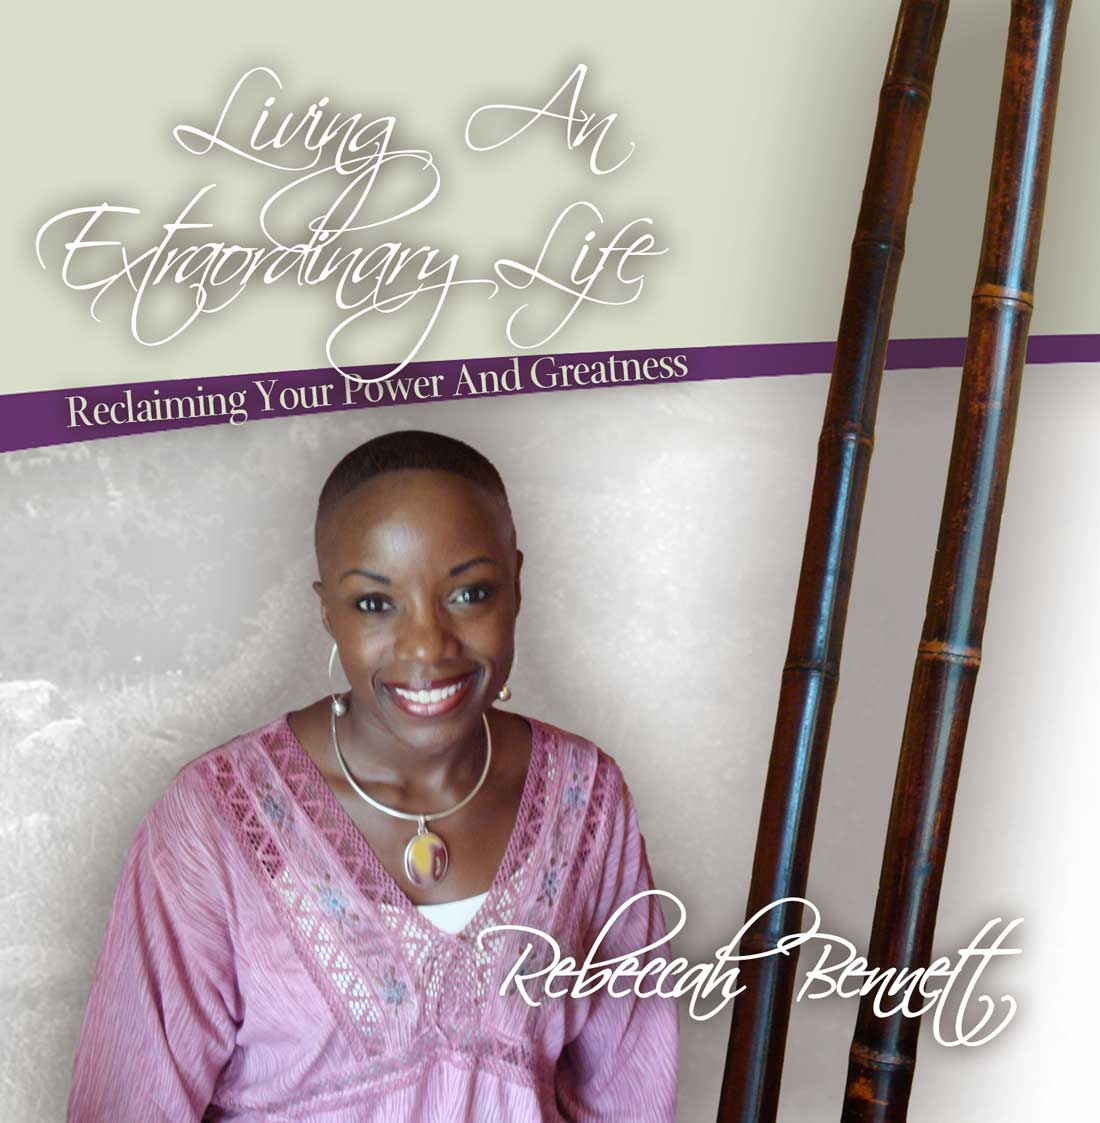 Living-An-Extraordinary-Life-CD